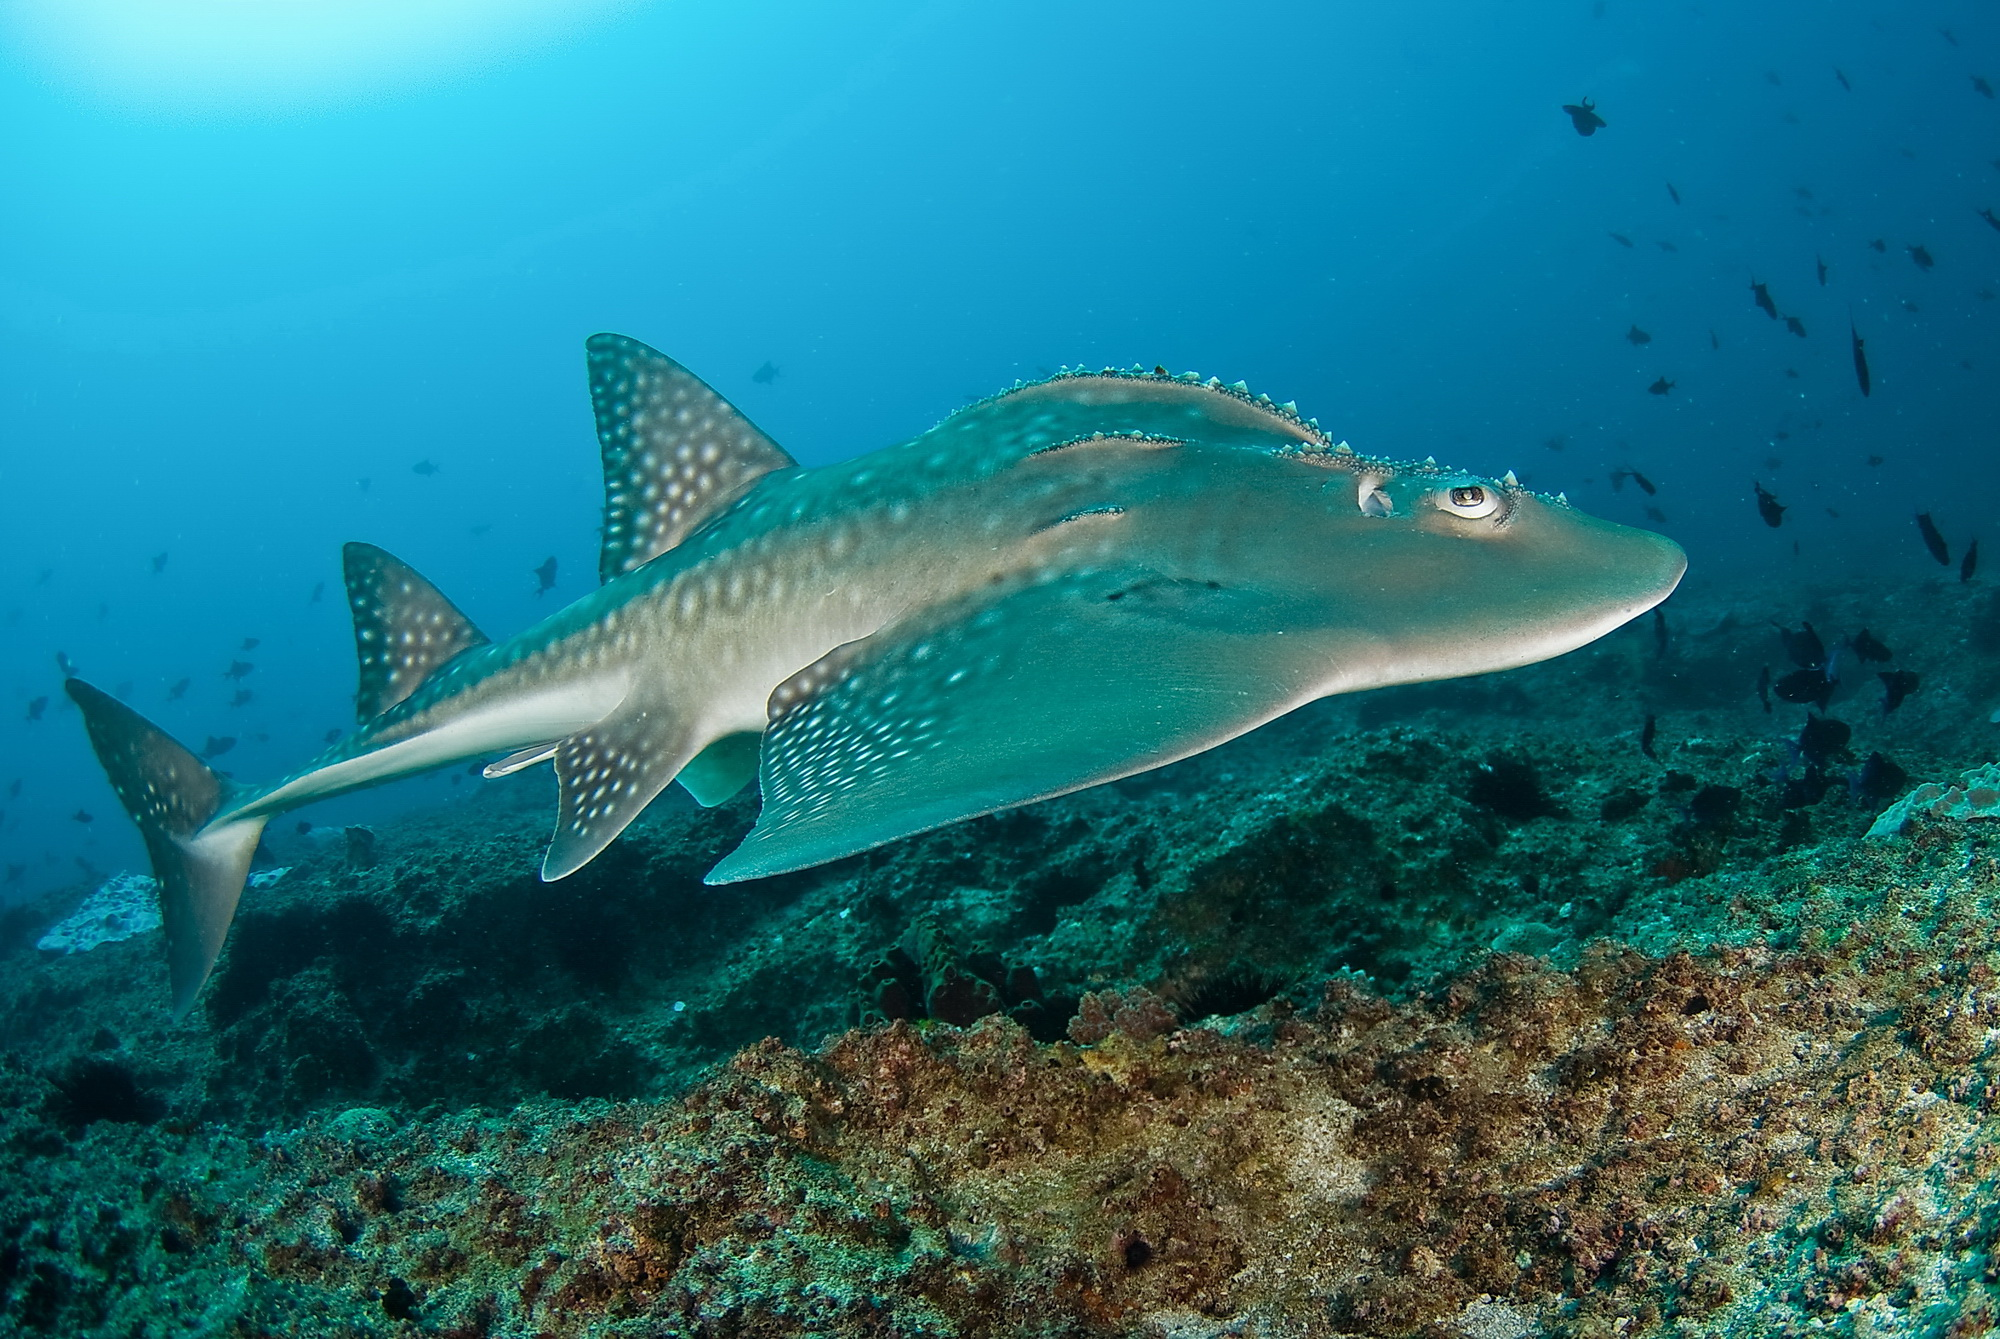 Cute Wallpapers For The Letter T Guitarfish Swims Photo And Wallpaper Cute Guitarfish